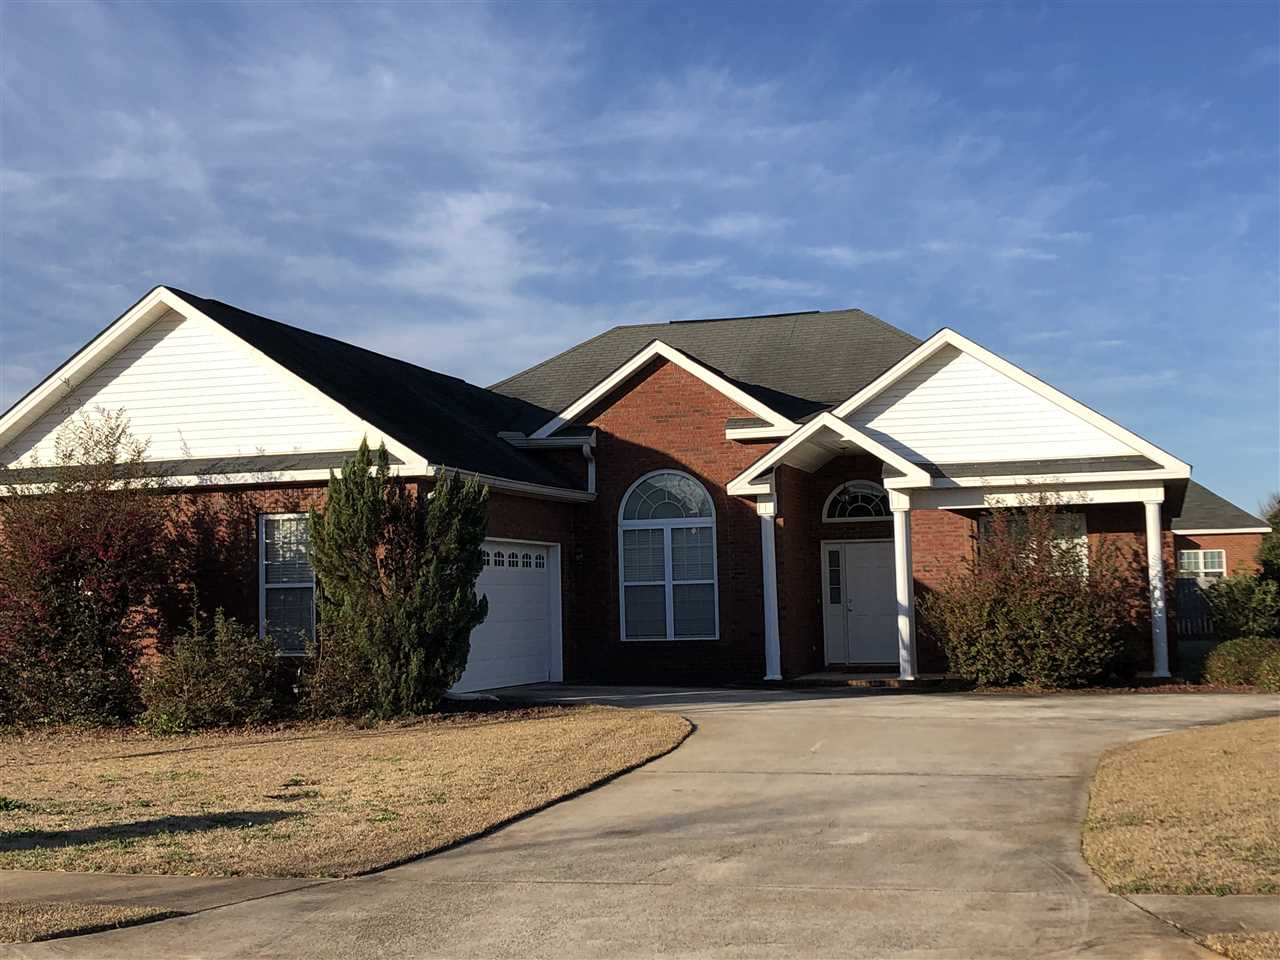 102 Bromley Way, Warner Robins, GA